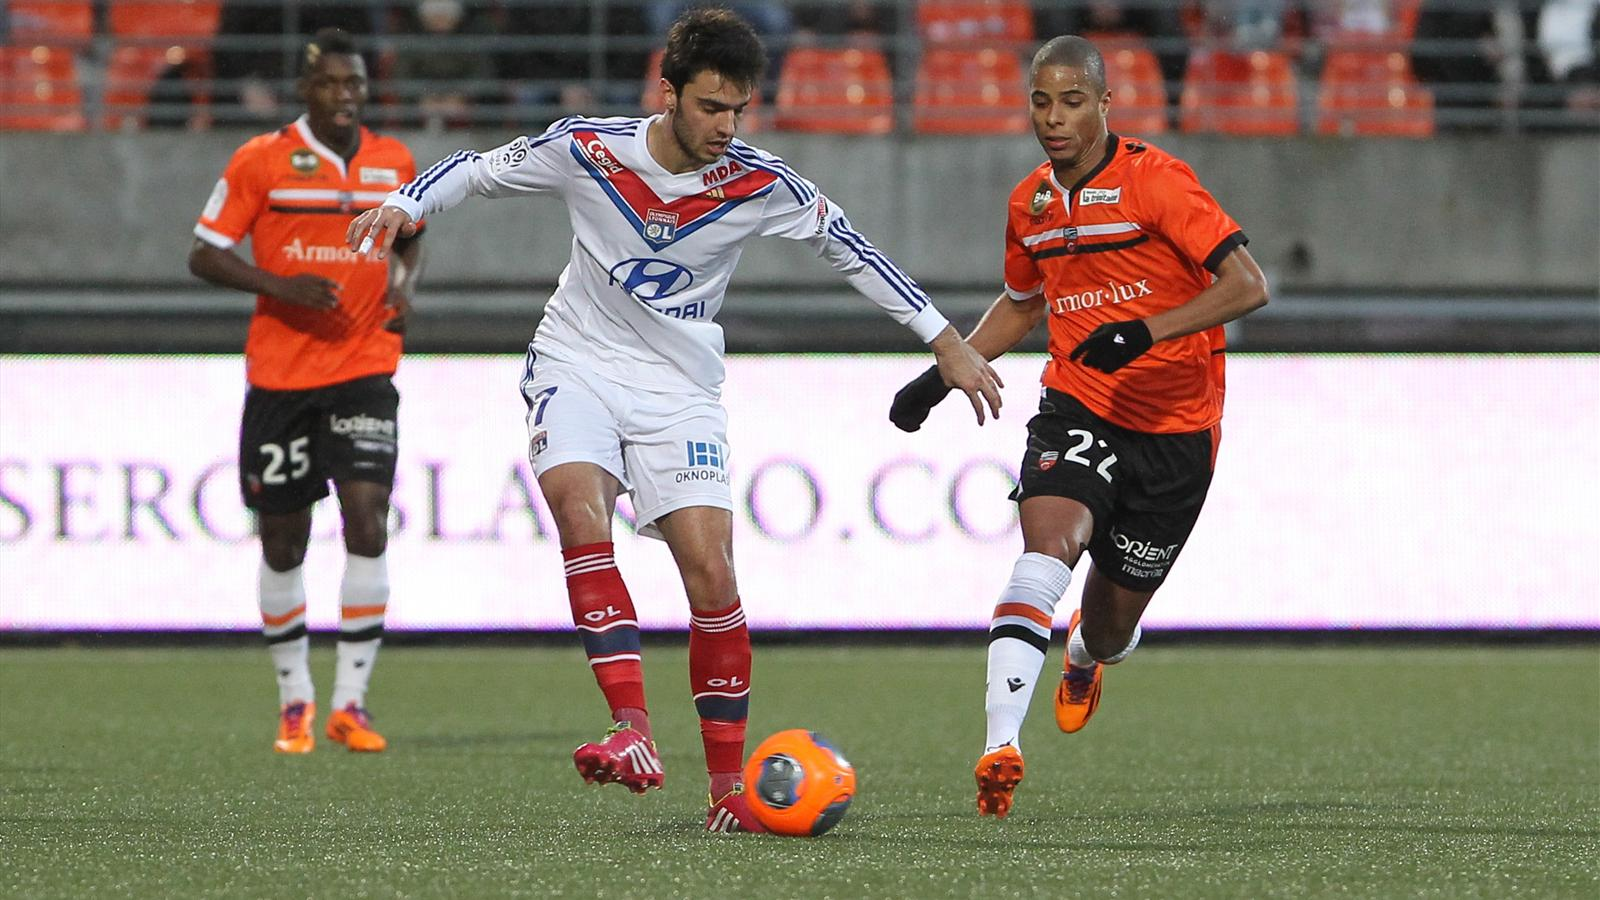 Match Olympique Lyonnais vs FC Lorient en direct streaming live